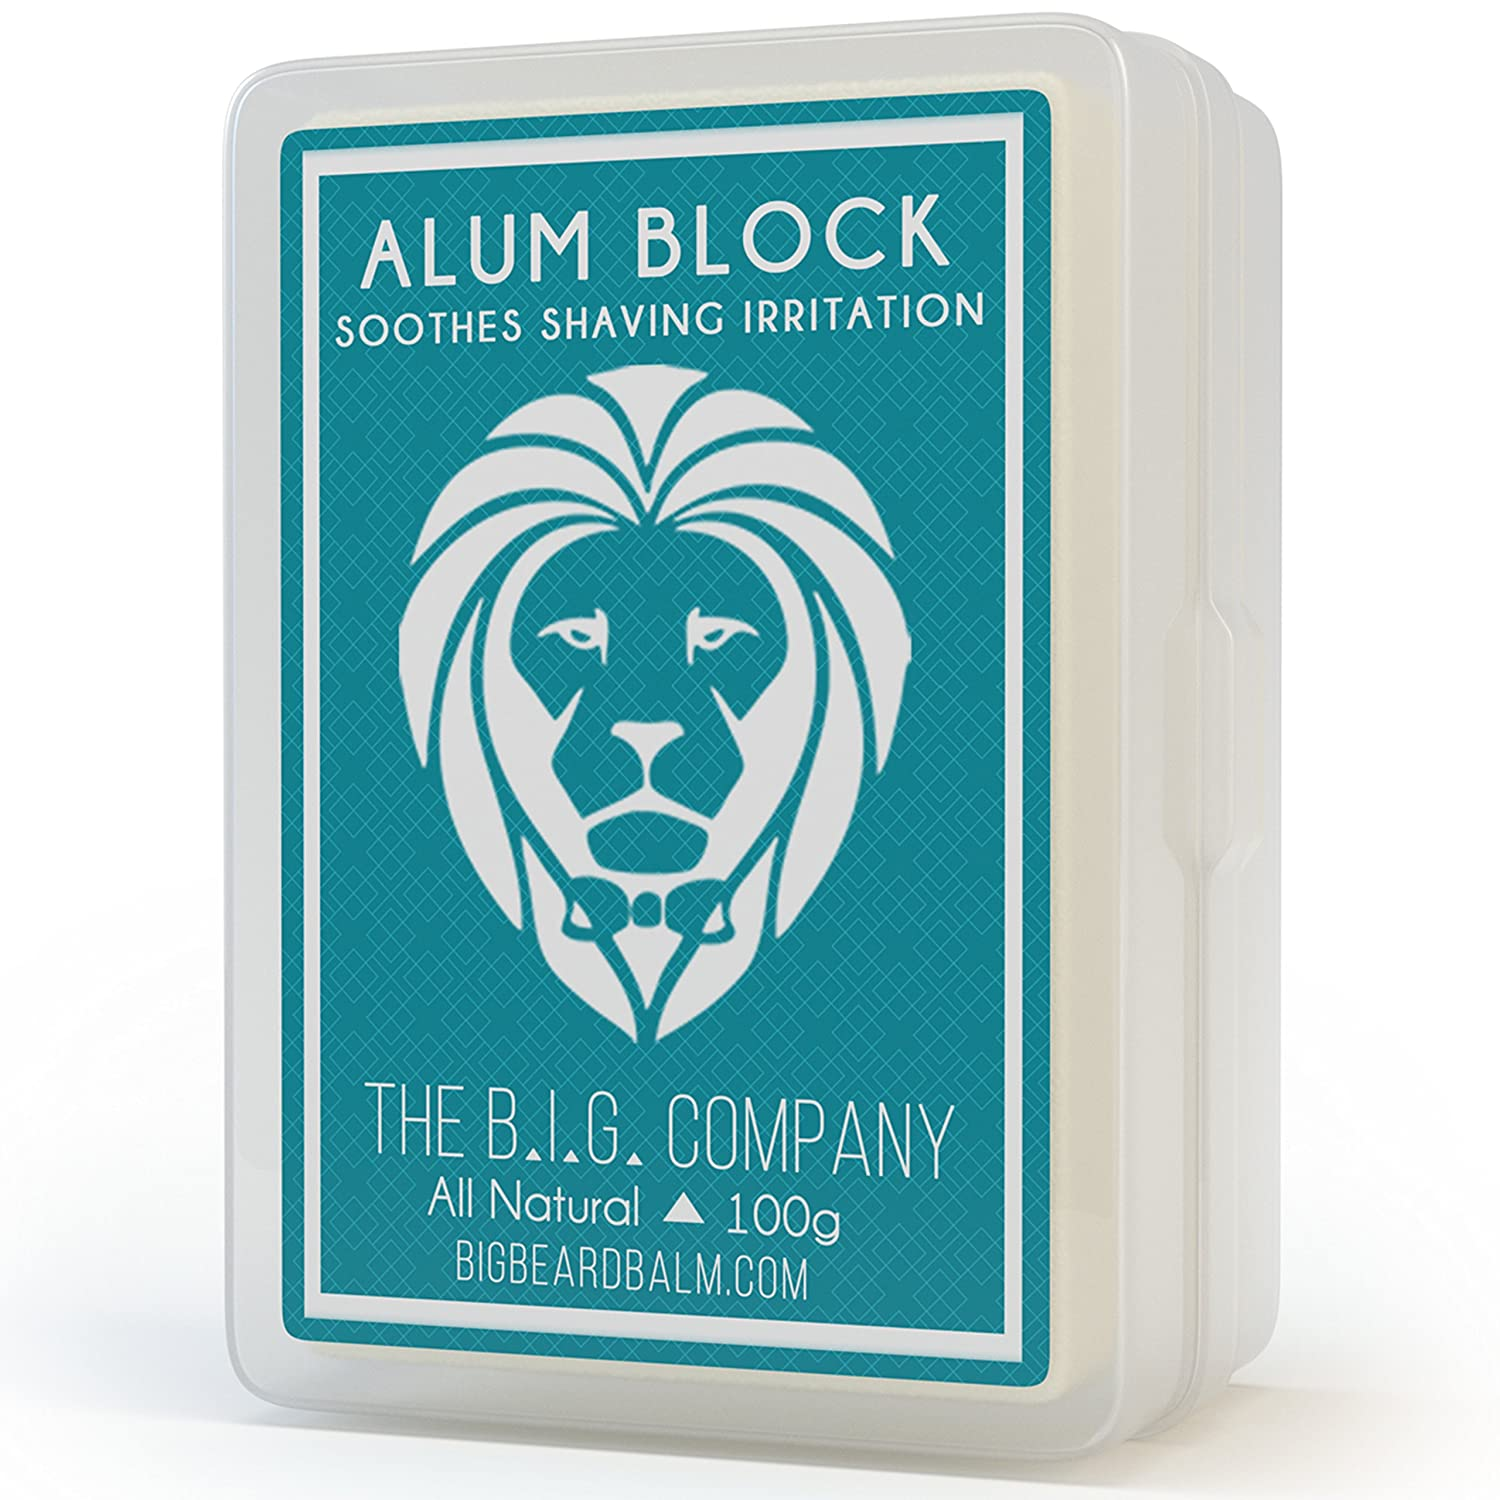 The B.I.G. Company Alum Block - 3.52oz includes Storage Case - Soothing aftershave astringent to close pores and help stop bleeding from nicks and cuts. B.I.G. Beard Balm